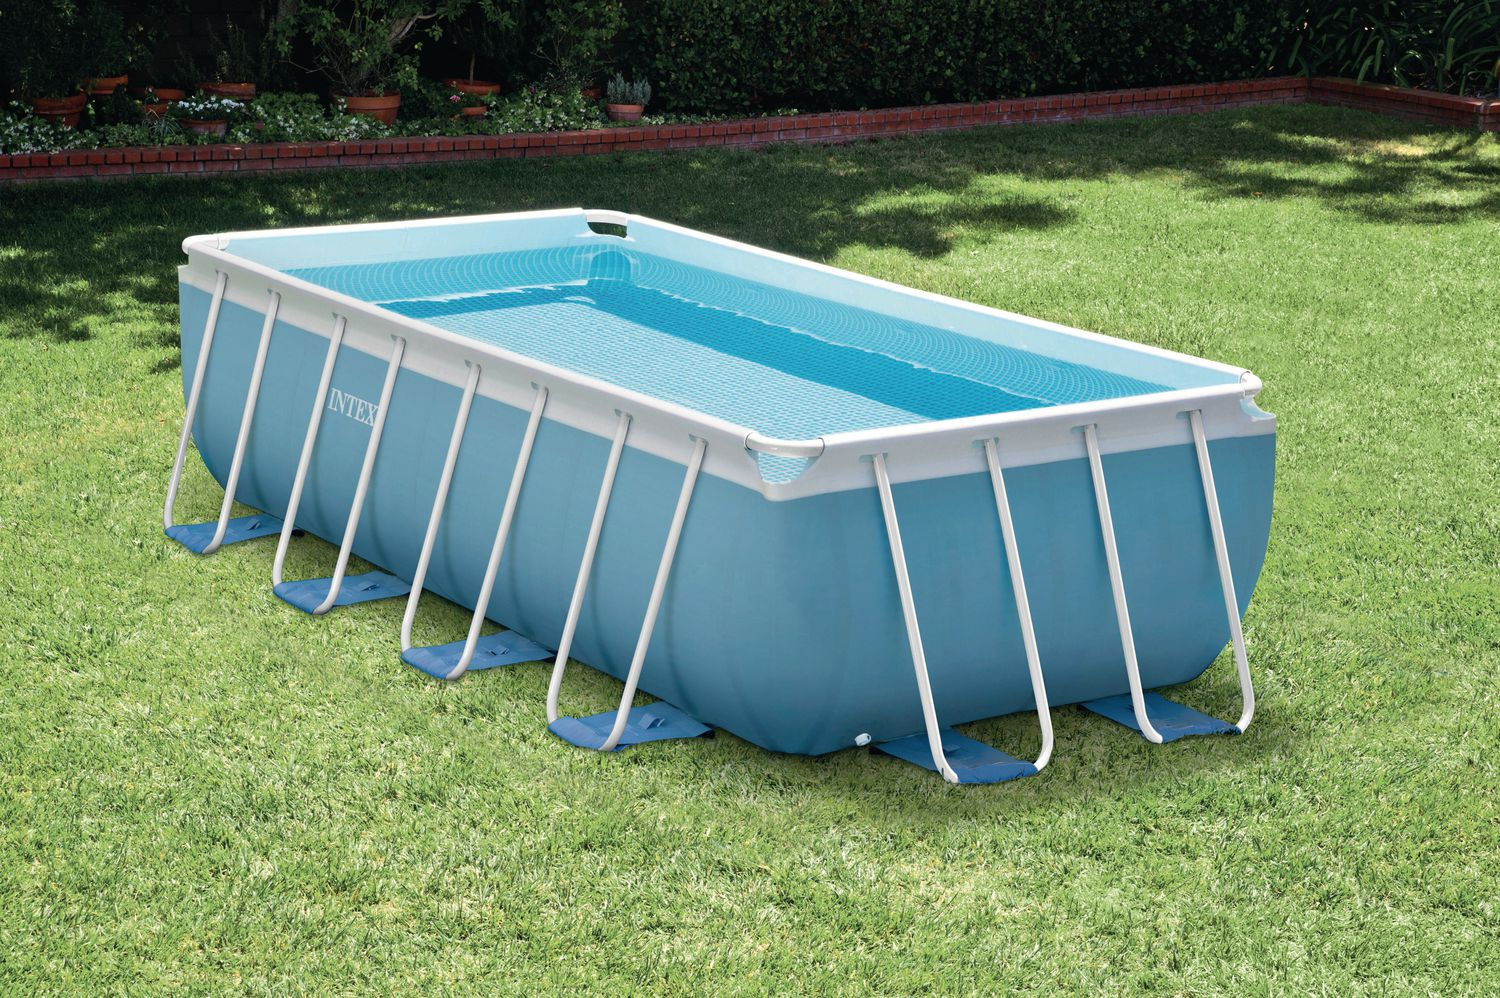 Piscine gonflable intex canada for Canadian tire piscine hors terre